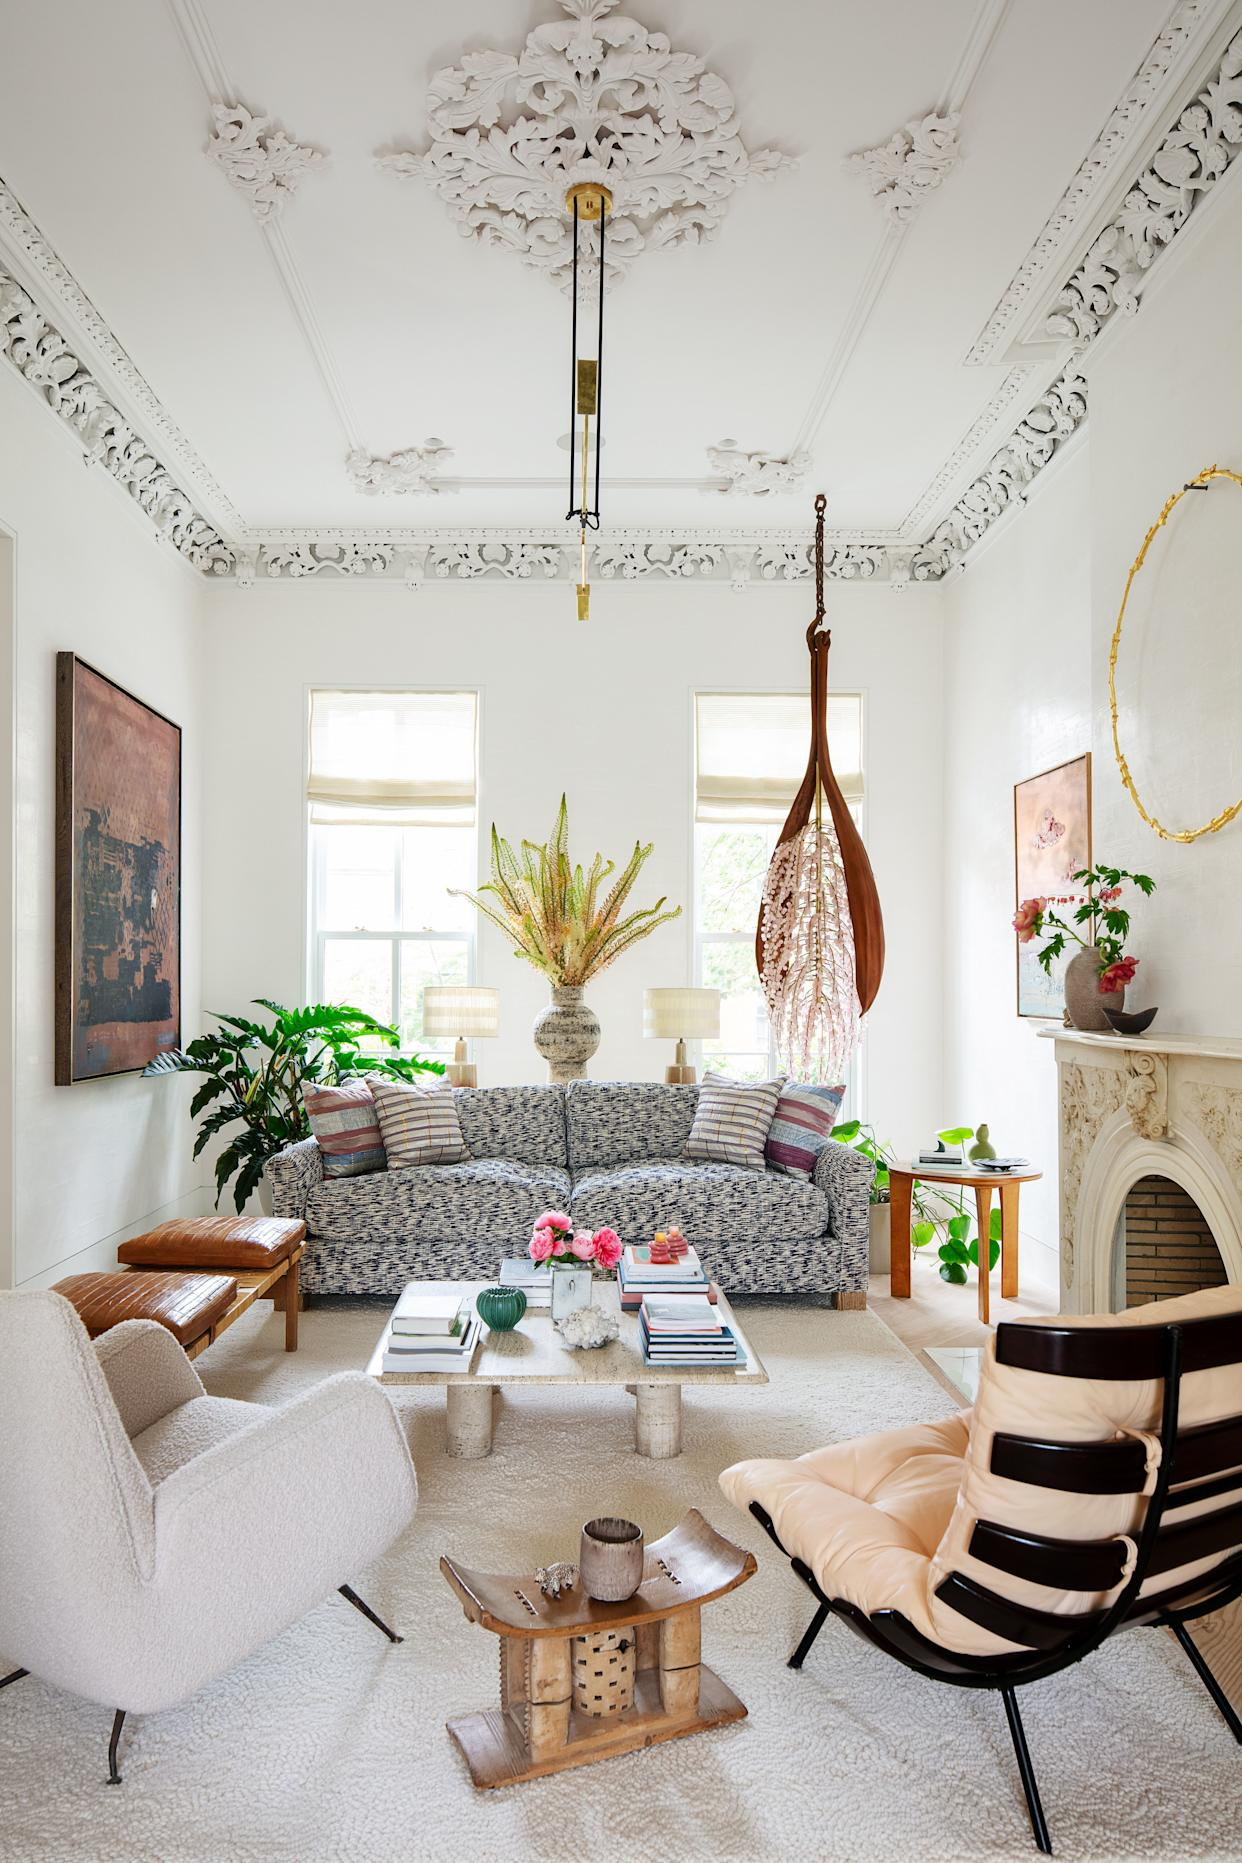 """<div class=""""caption""""> The living room's bespoke sofa wears a nubby abstract ikat handwoven in California. </div>"""